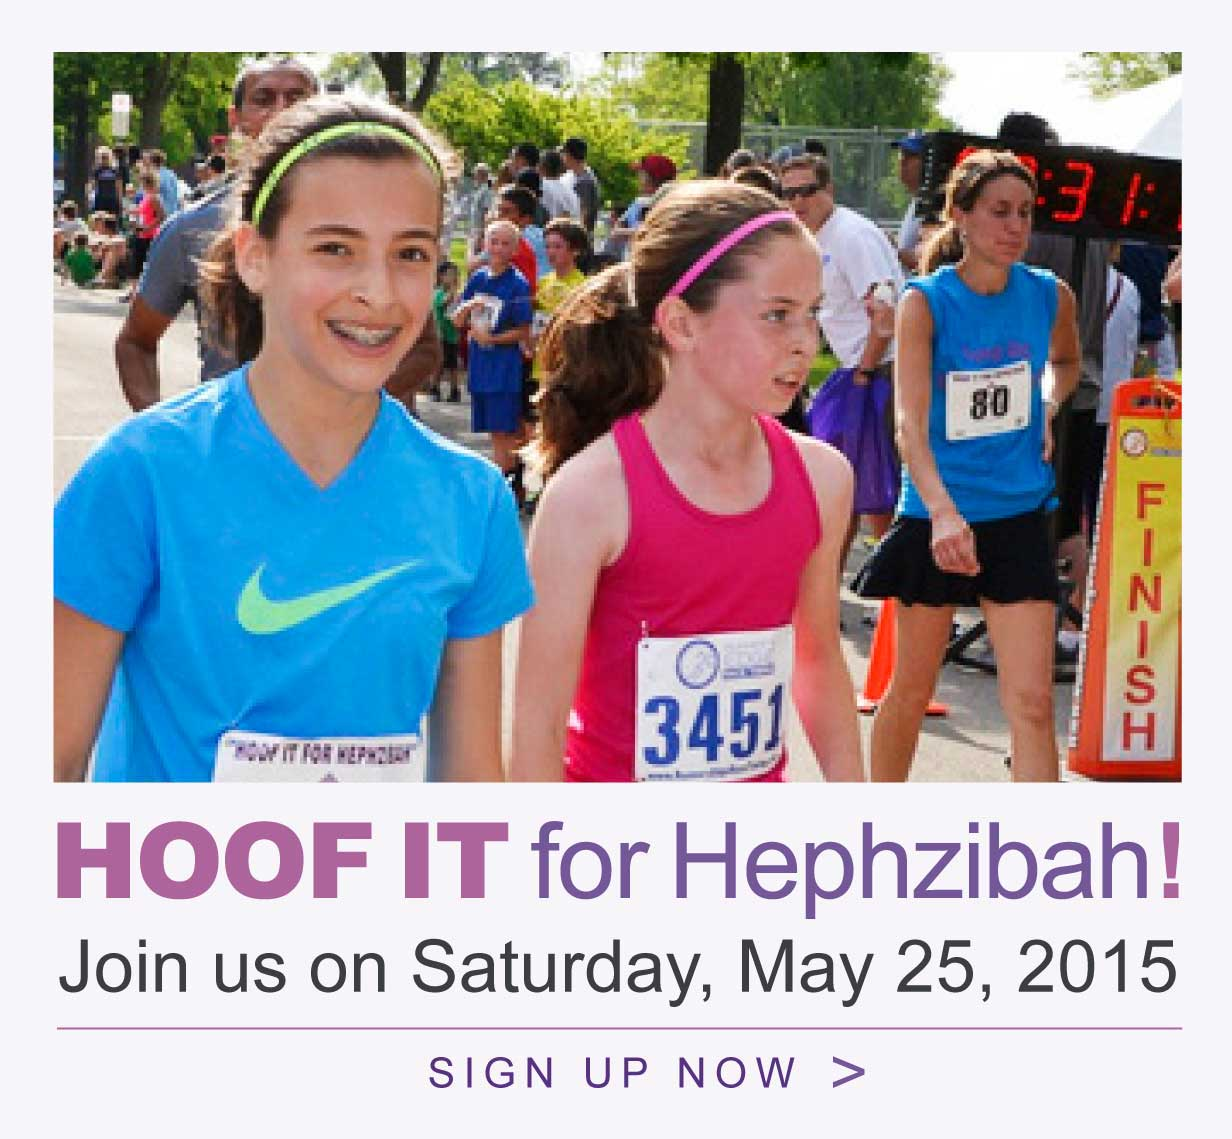 Hoof It for Hephzibah